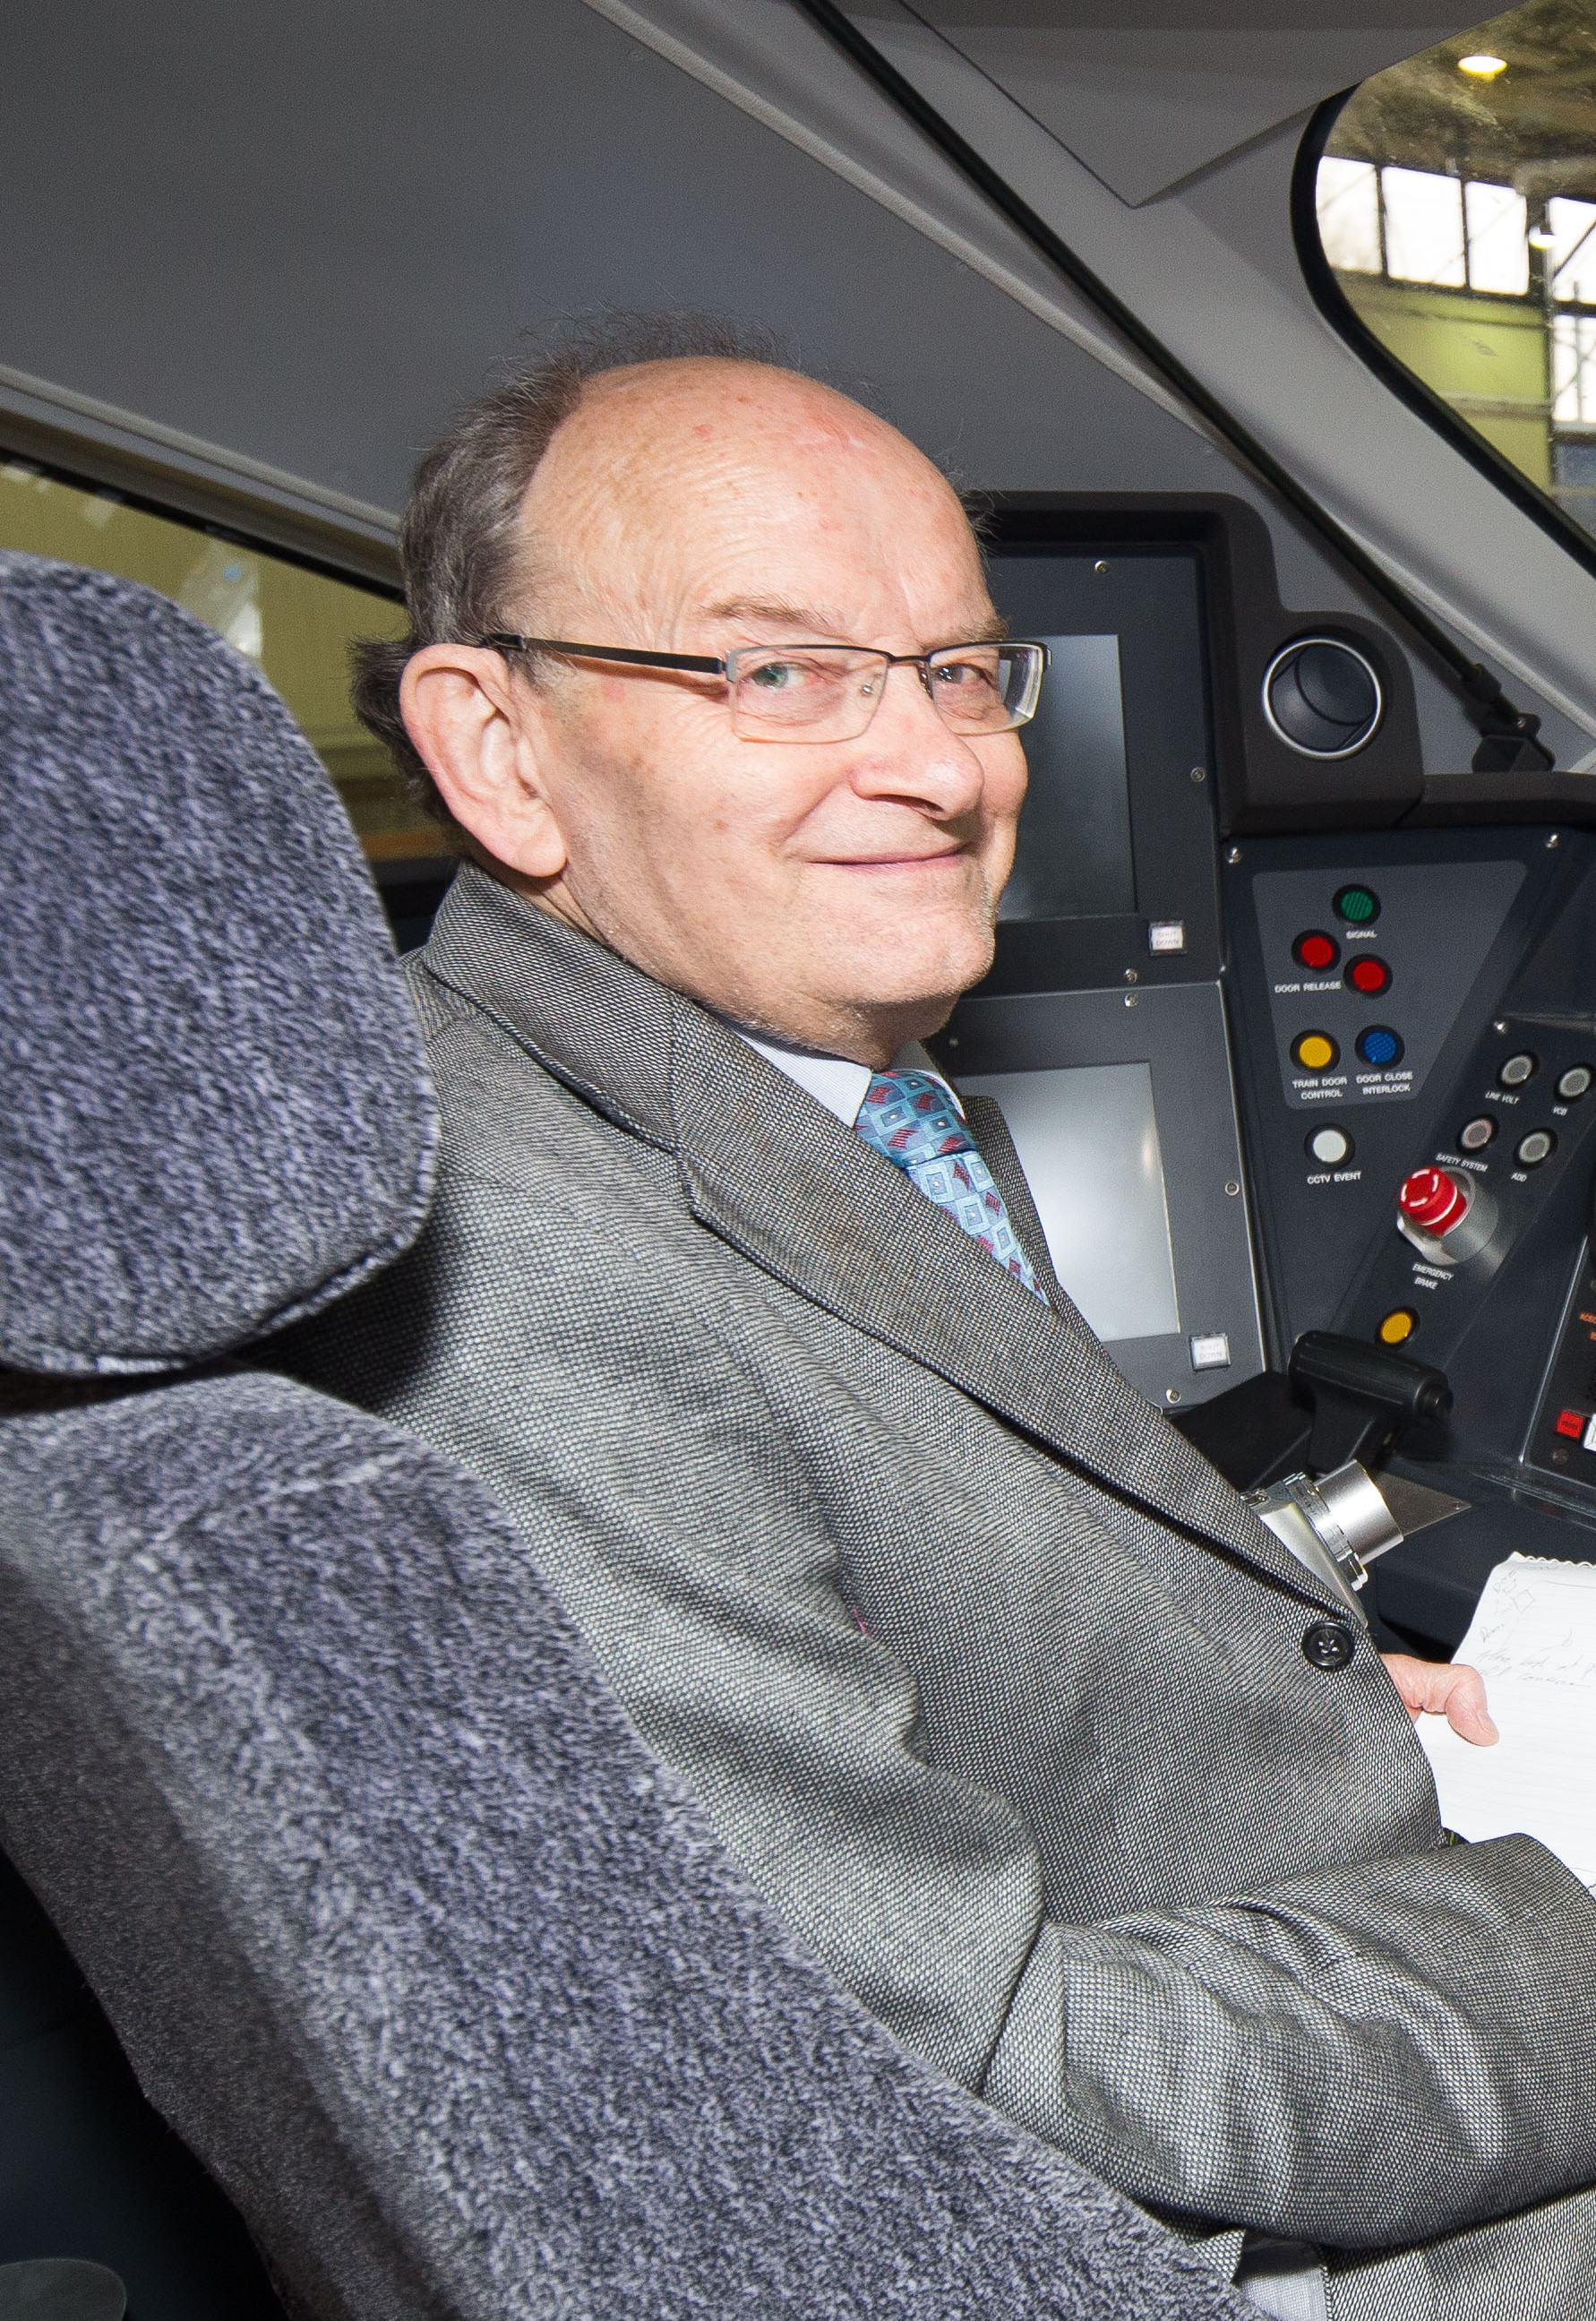 In the cab of [[British Rail Class 800|class 800002]] at North Pole Train Maintenance Centre, 2015